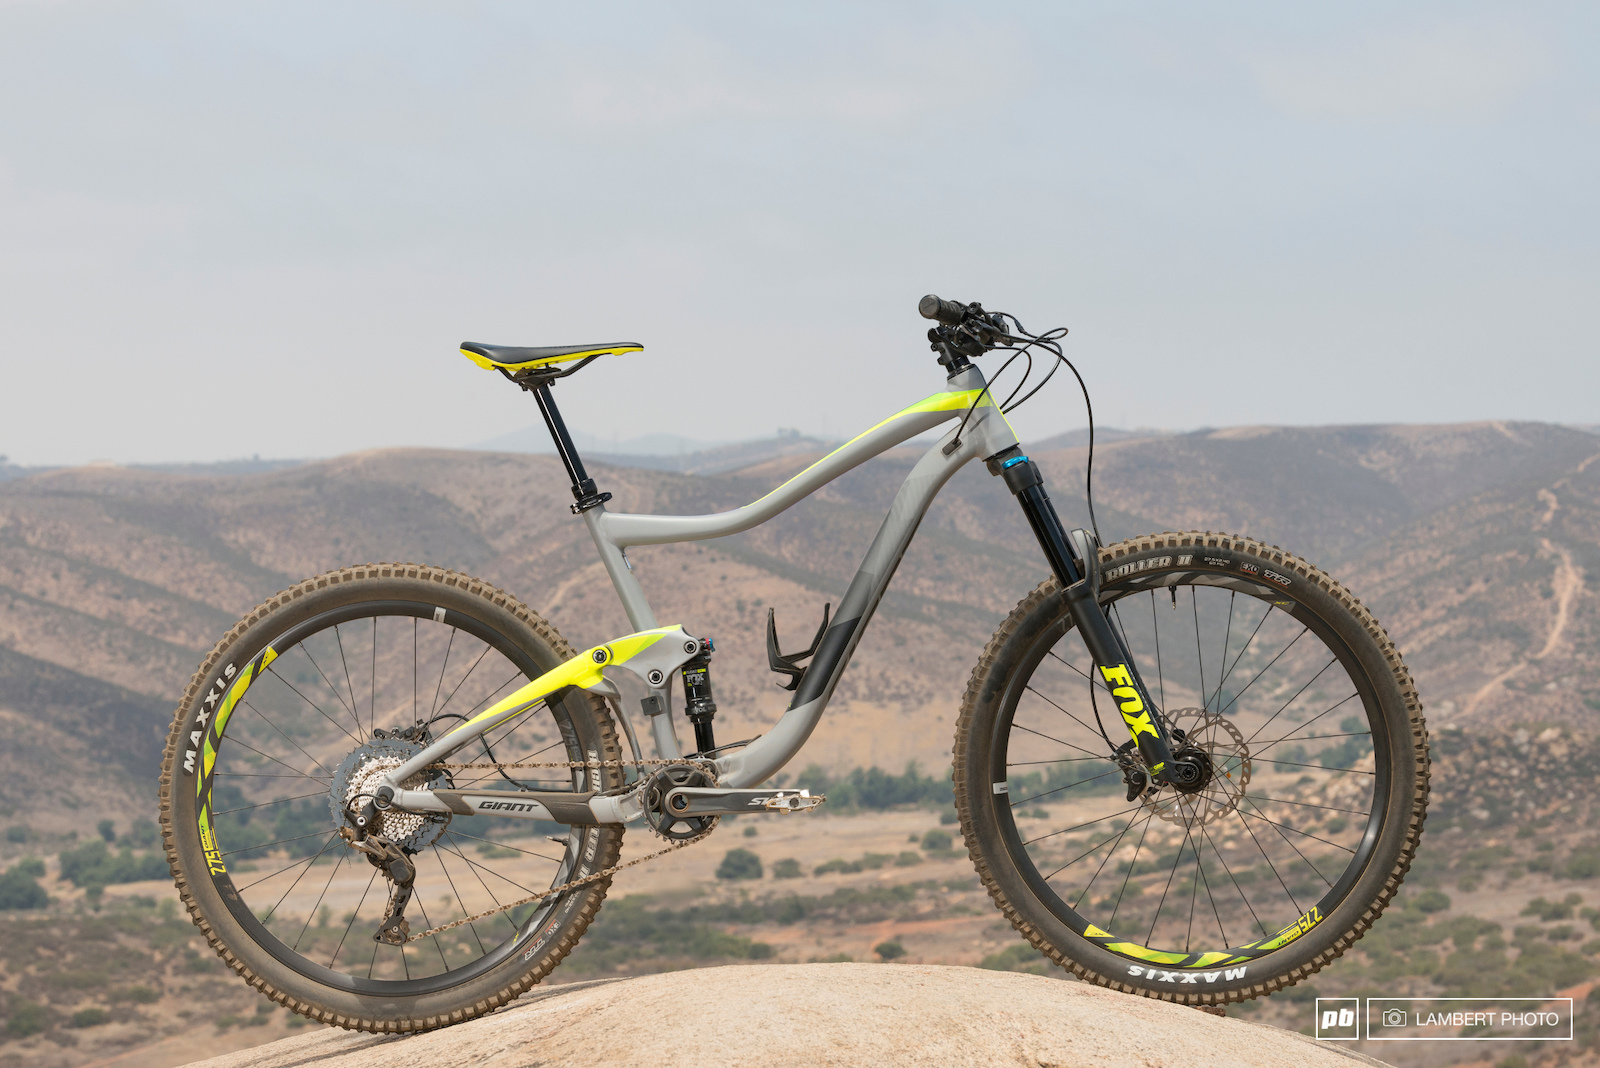 2c4857b8b48 Review: Giant Trance 2 - Pinkbike